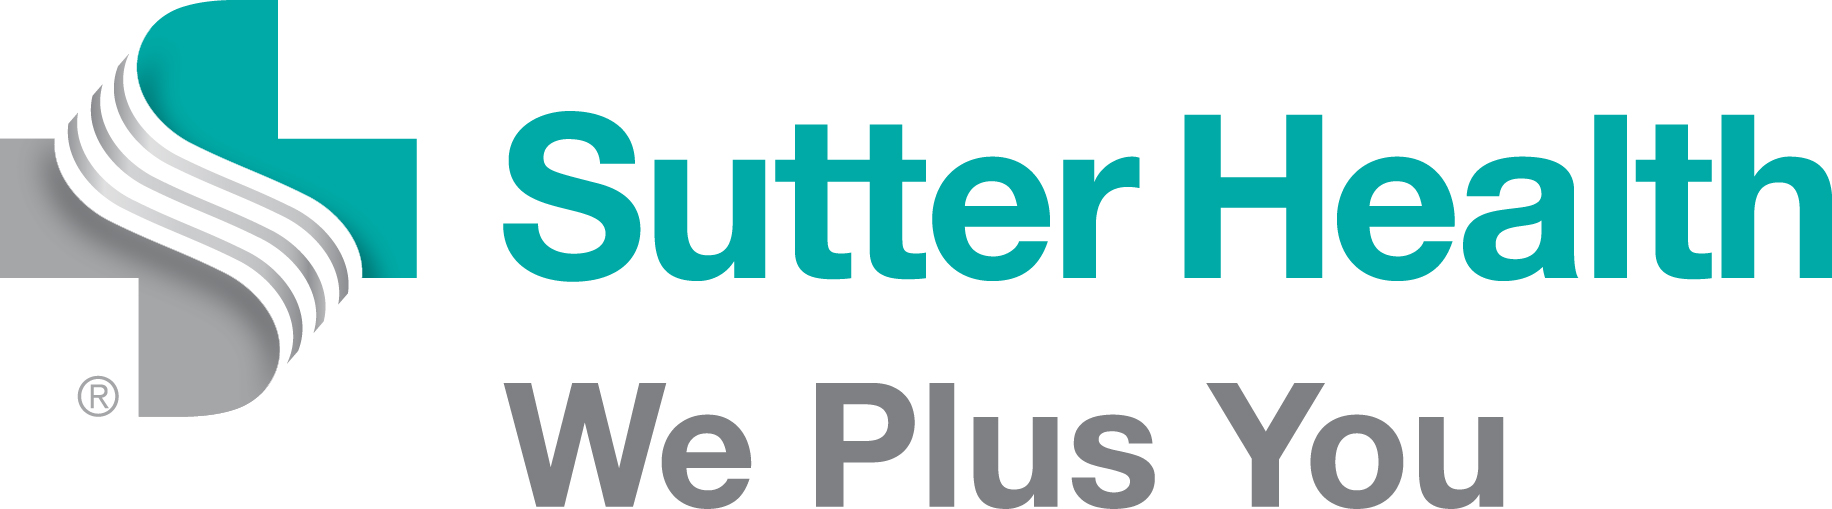 Suuter Health Pathology - Speech Recognition Solution